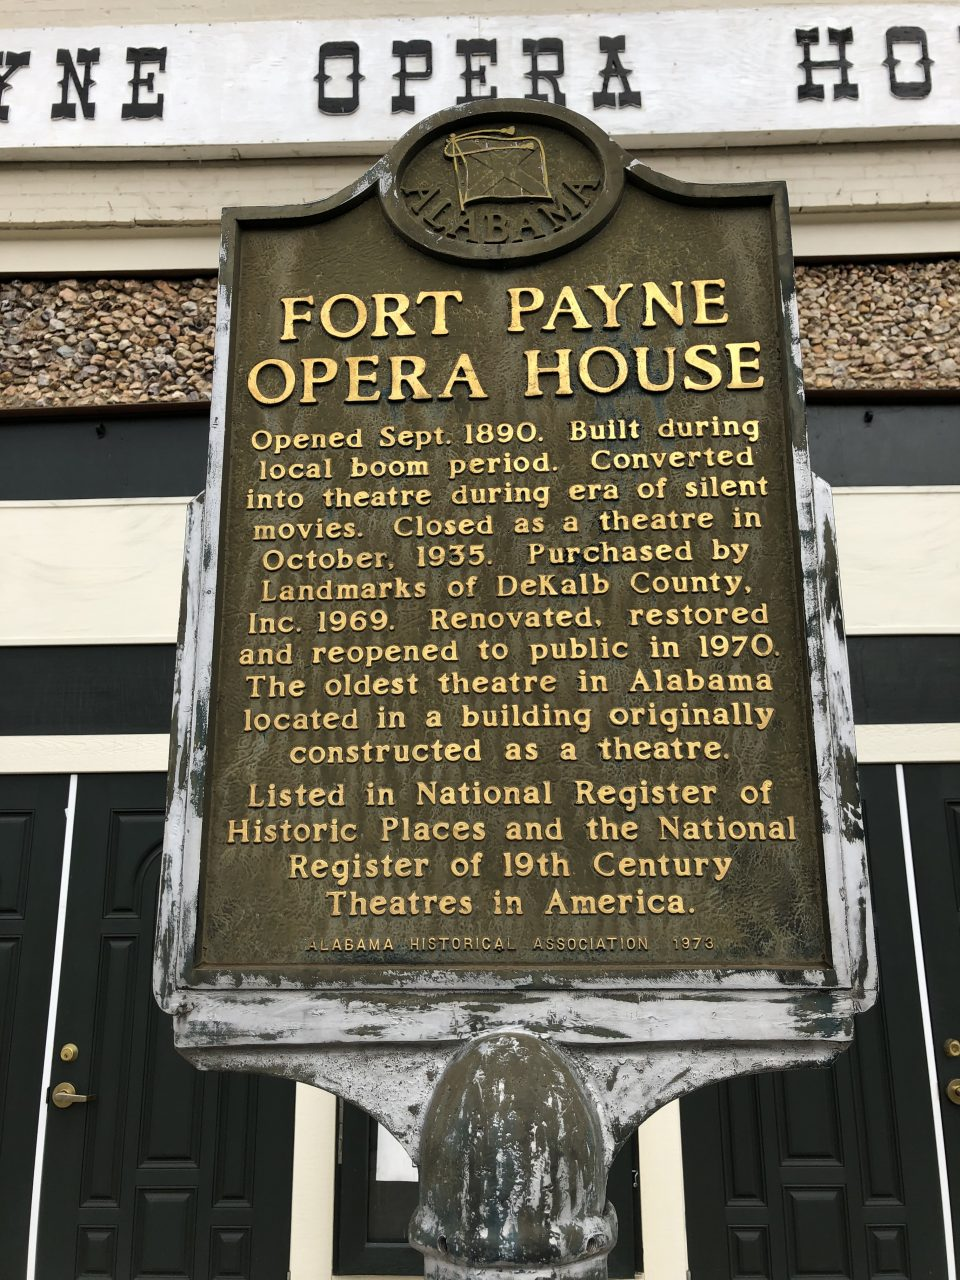 Historical Marker for the Ft. Payne Opera House.